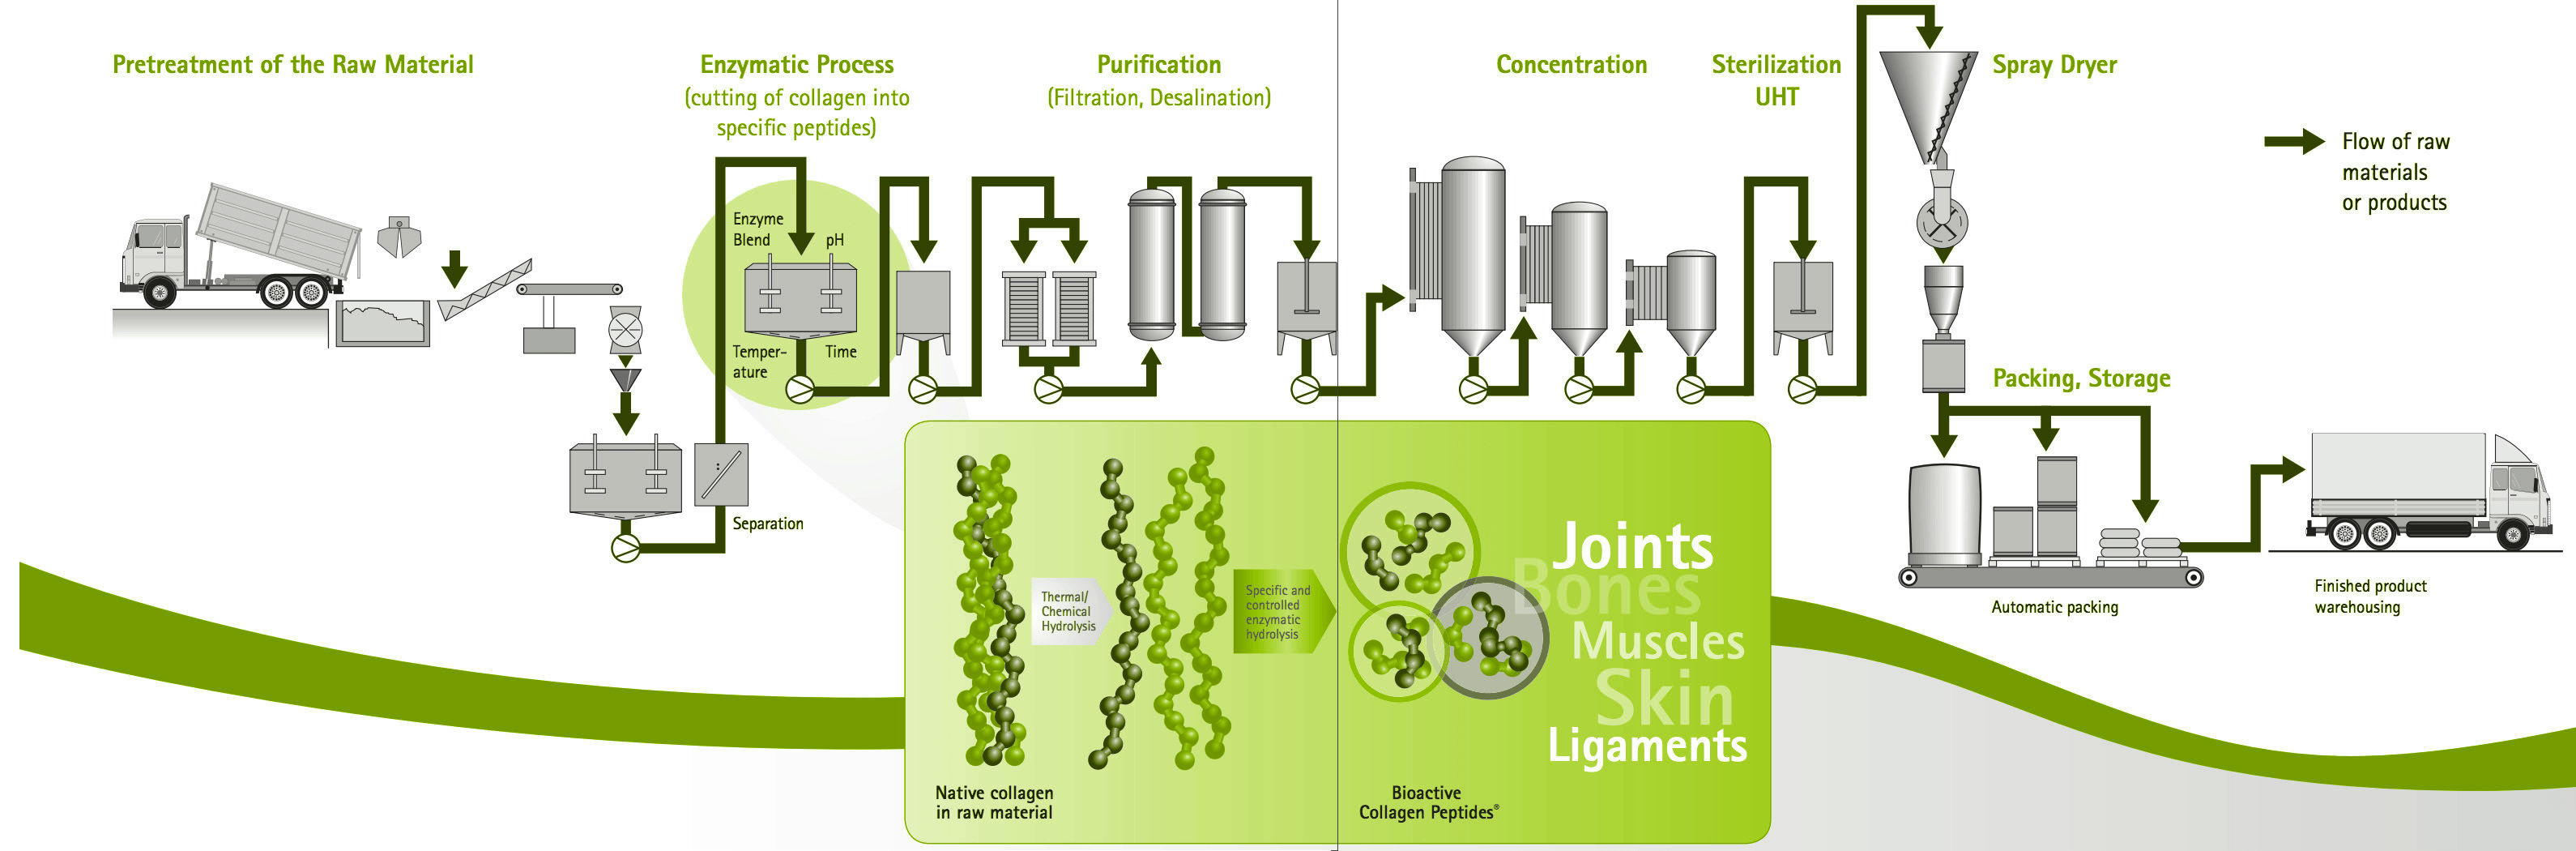 processing of collagen from raw materials to product